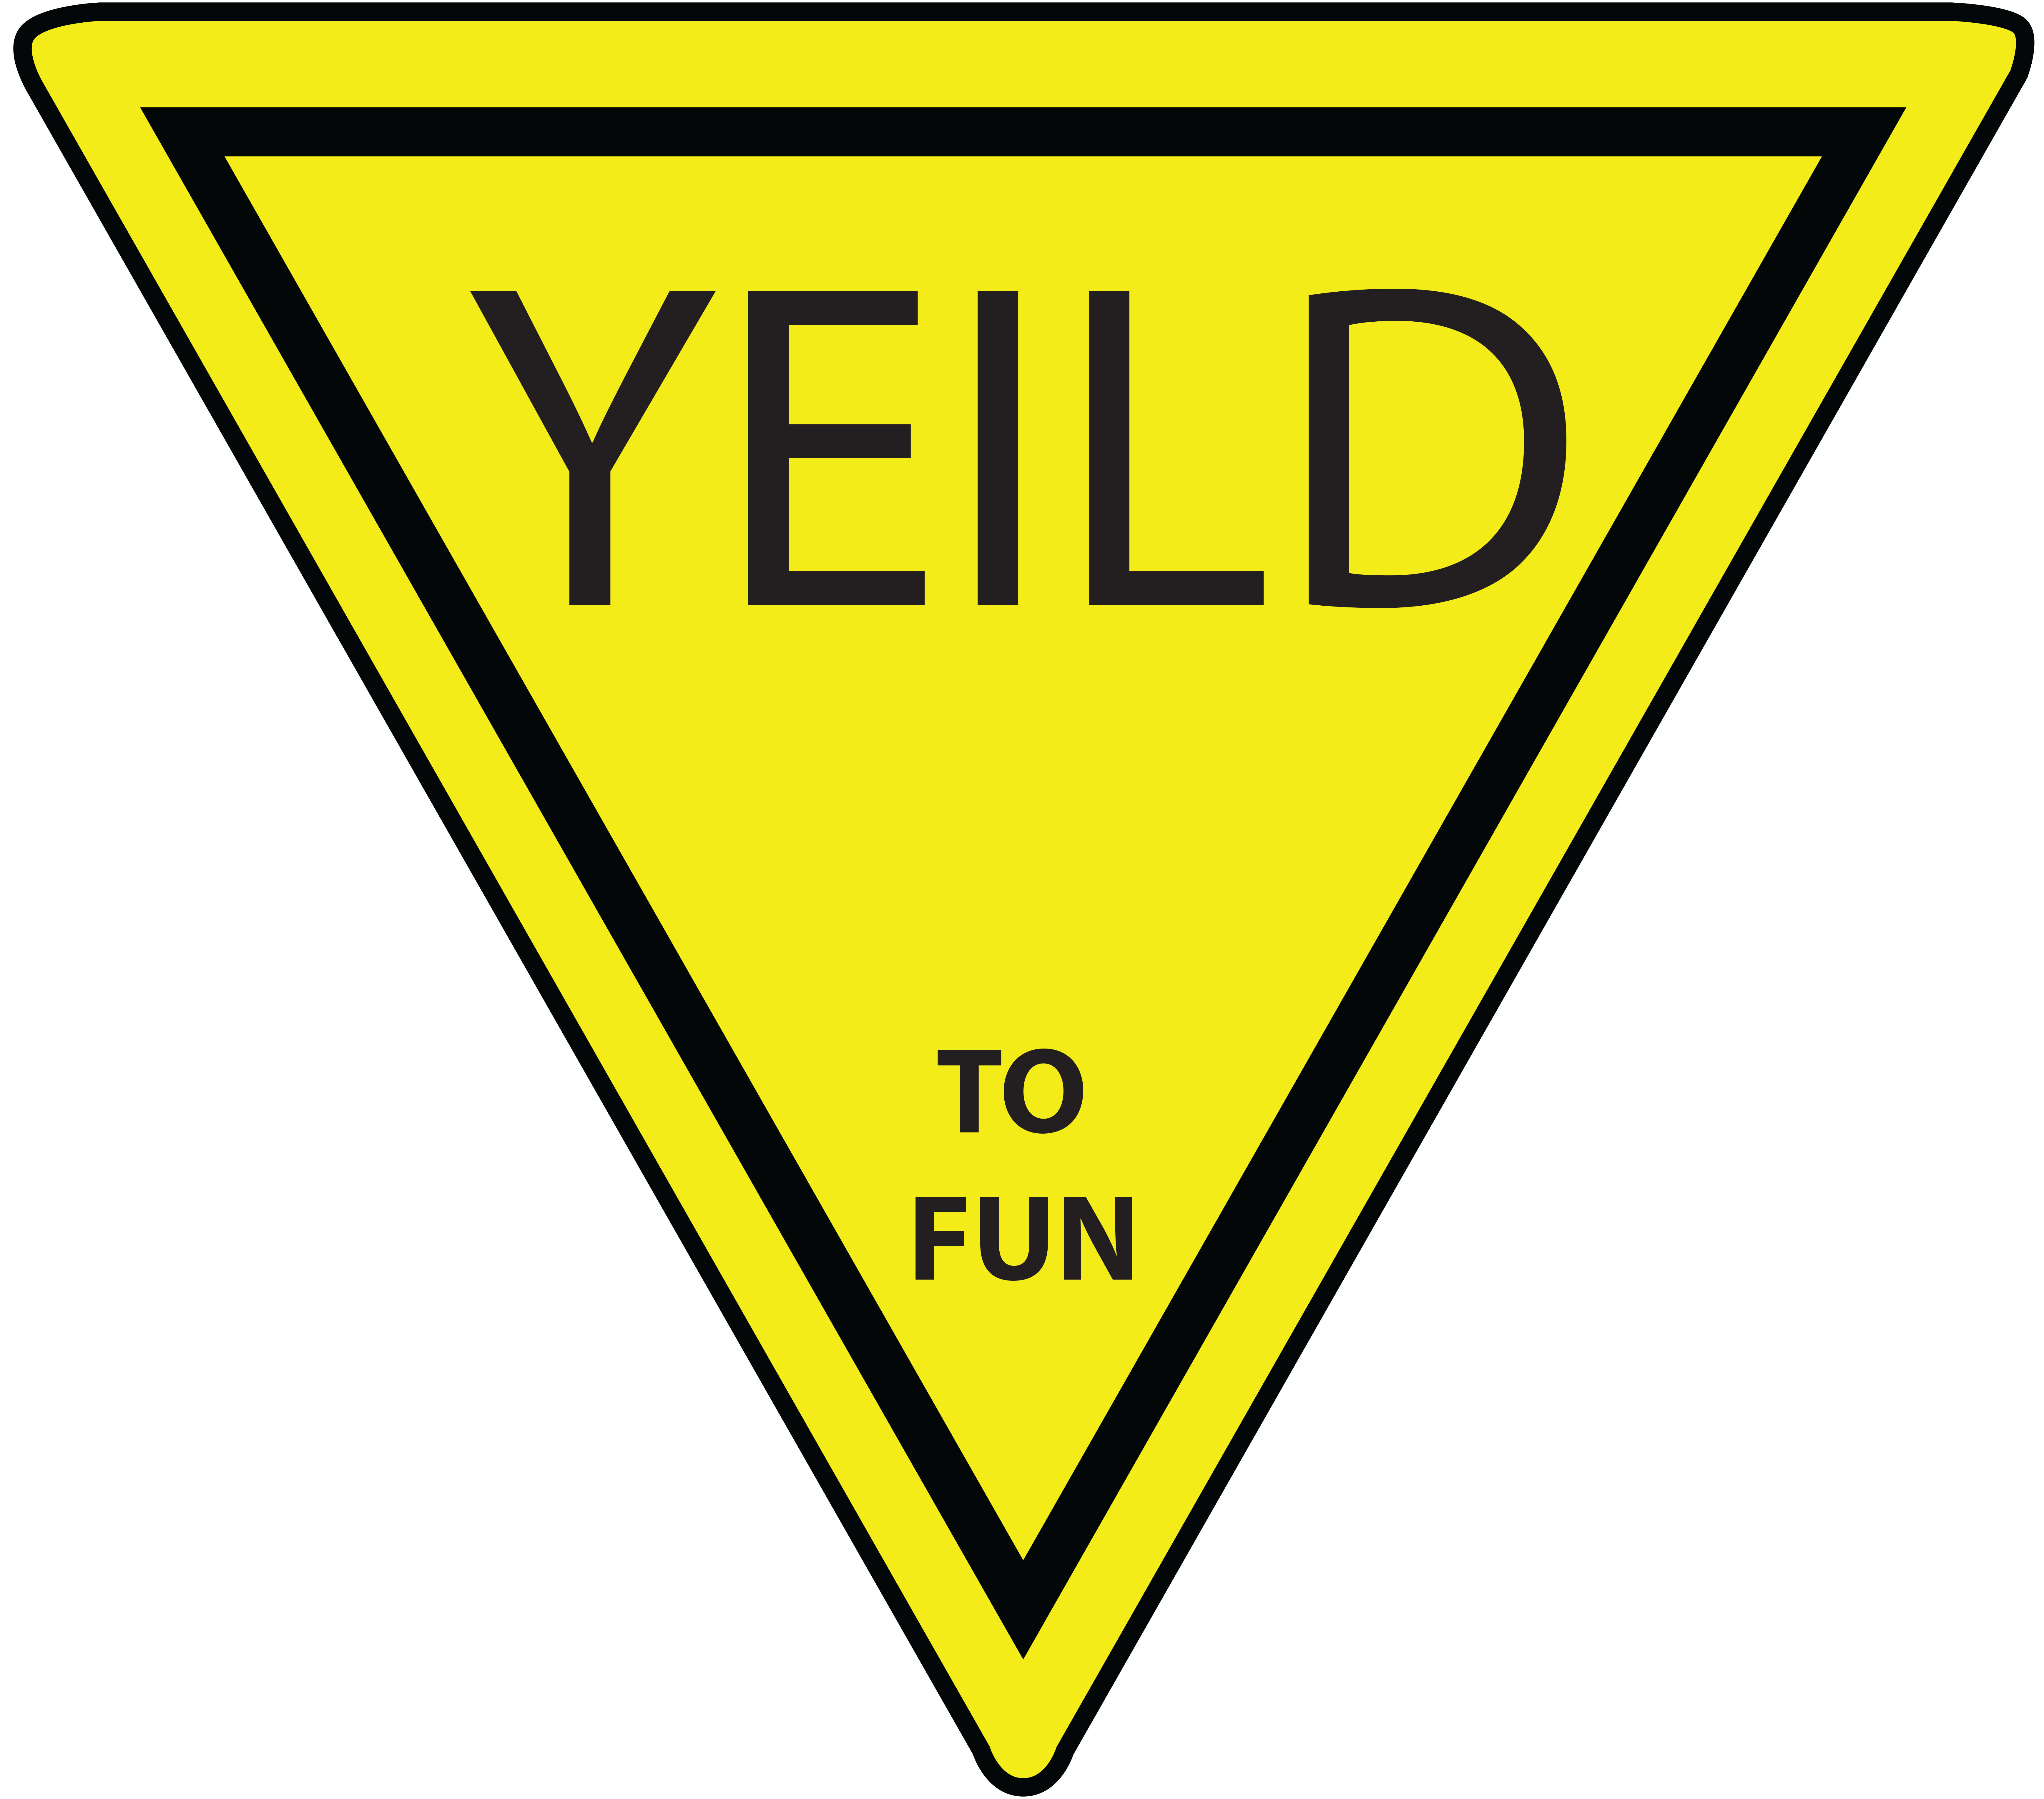 6946x6113 Yield Sign Clip Art Many Interesting Cliparts